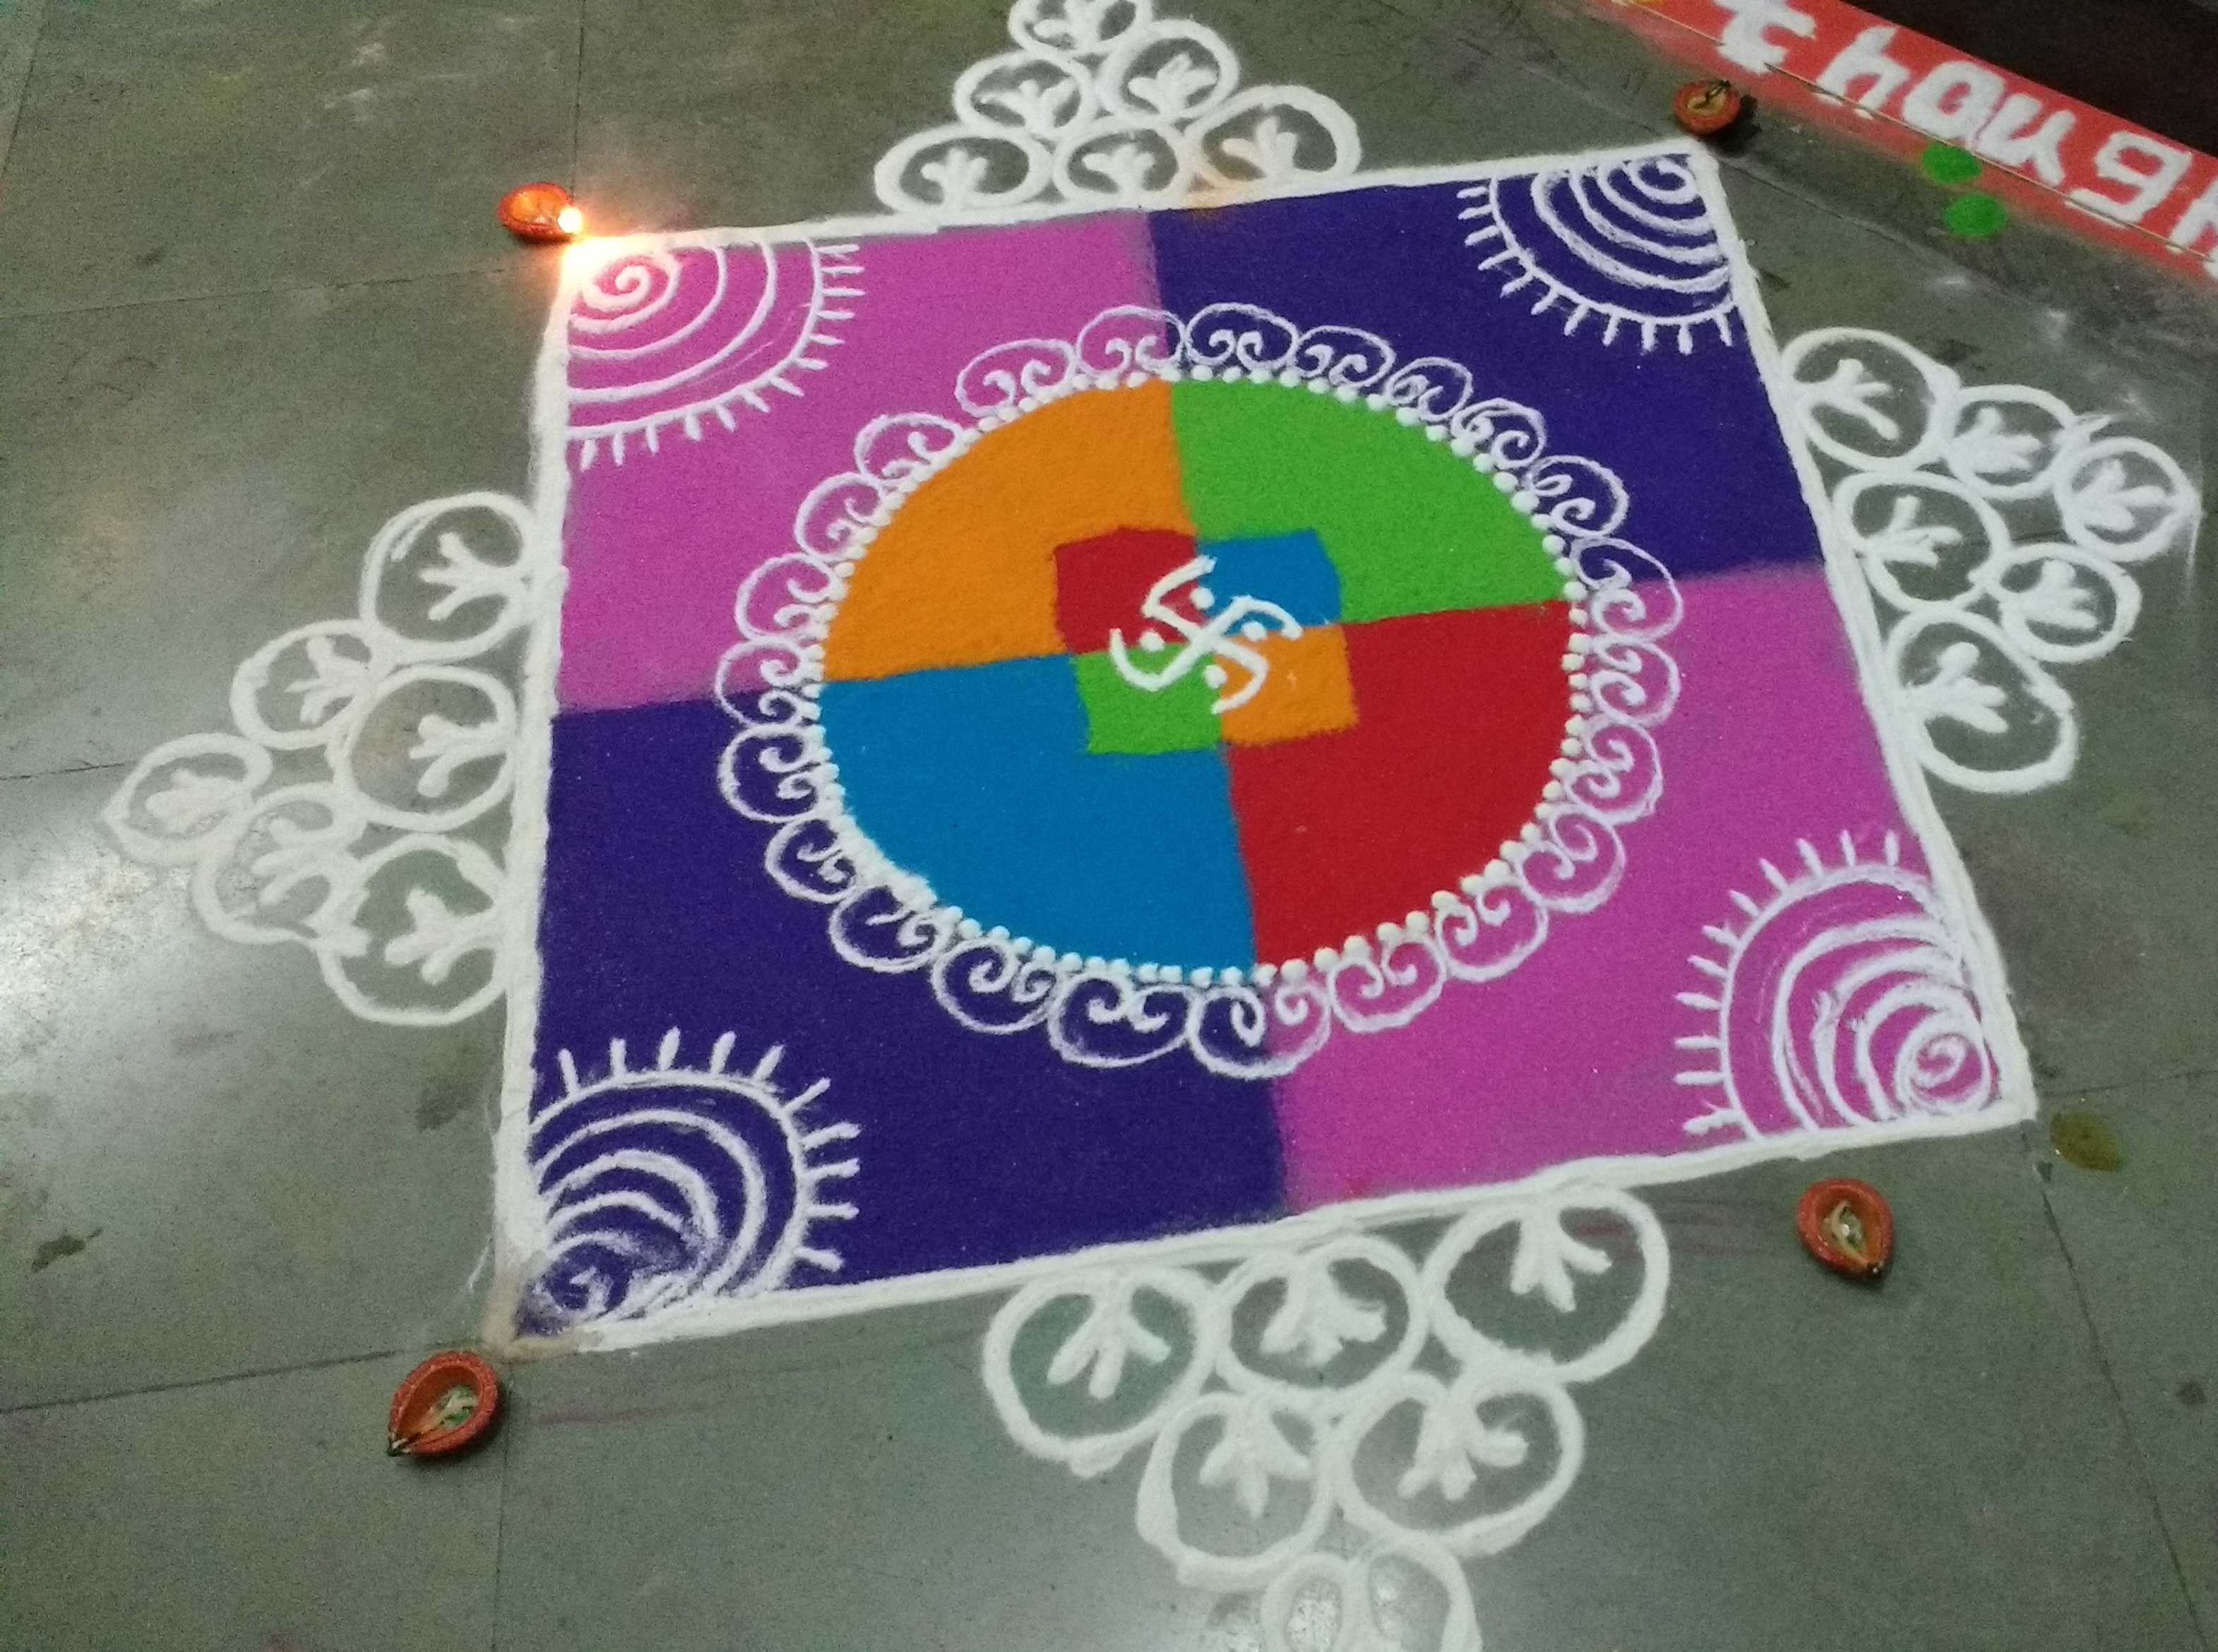 Rangoli Design Images New year rangoli, Rangoli designs